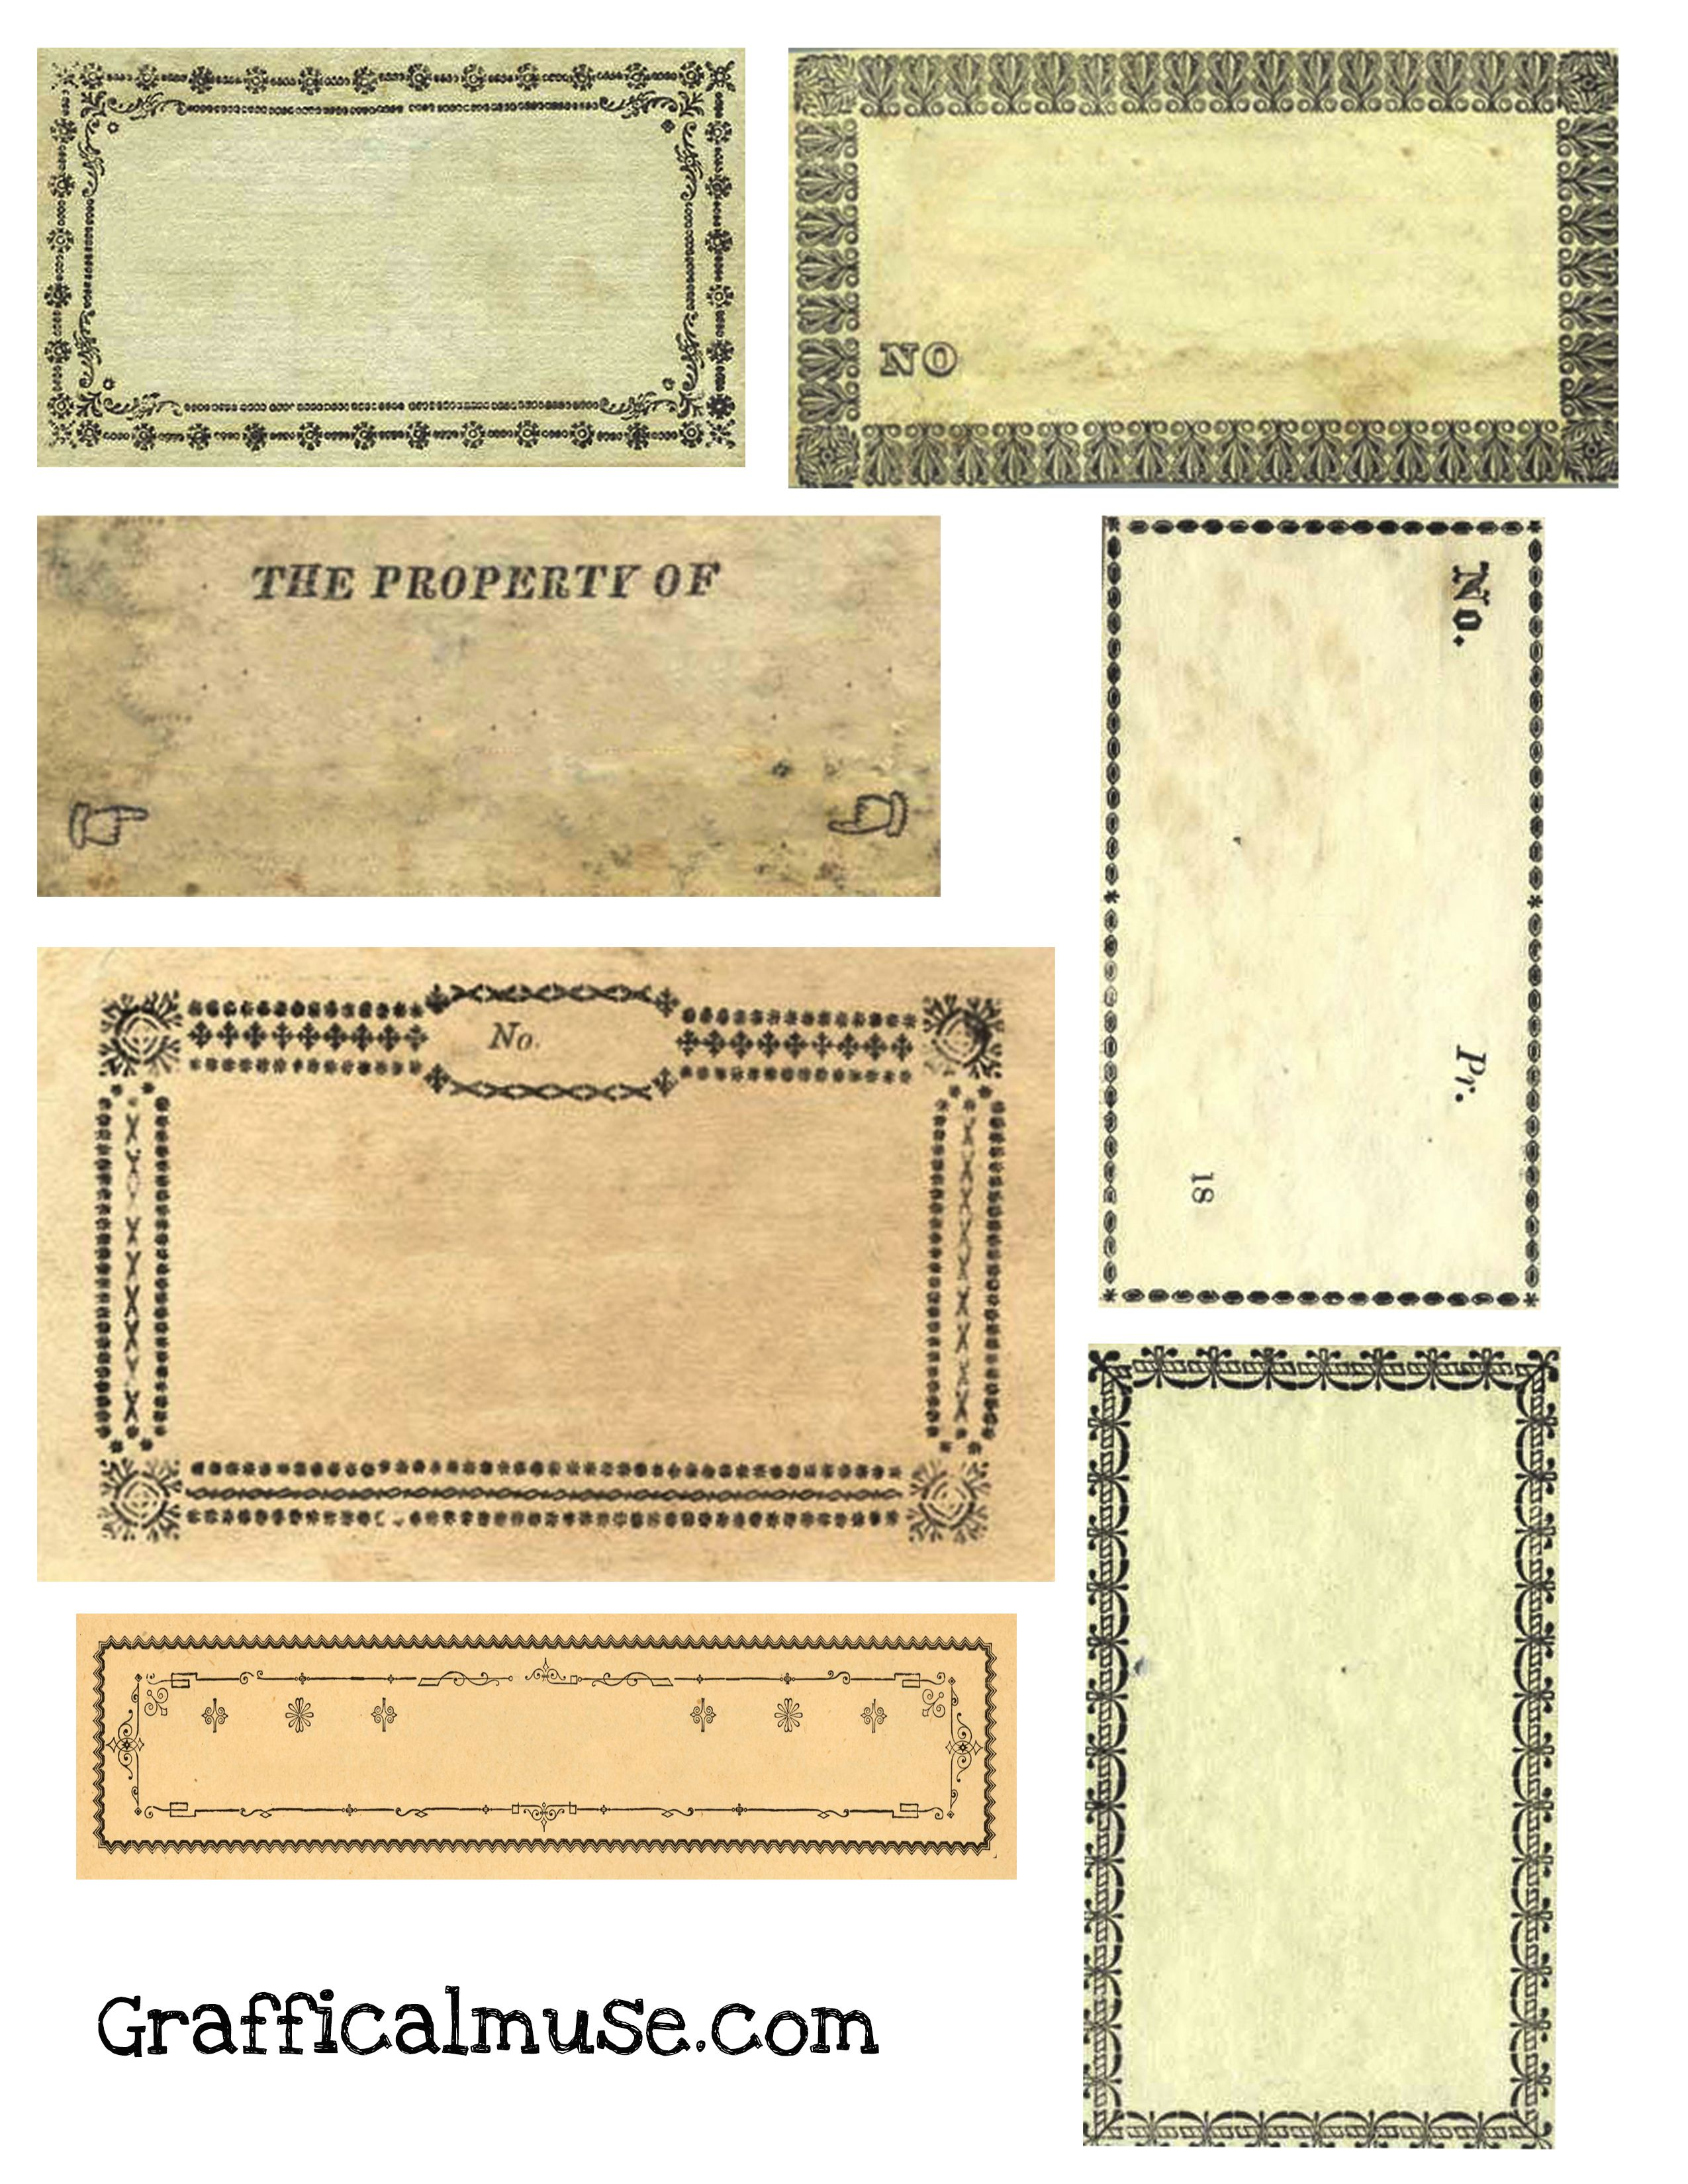 Free Vintage Labels From Victorian Era Collage Sheet The Graffical Muse Vintage Labels Printables Free Vintage Labels Printables Free Vintage Printables